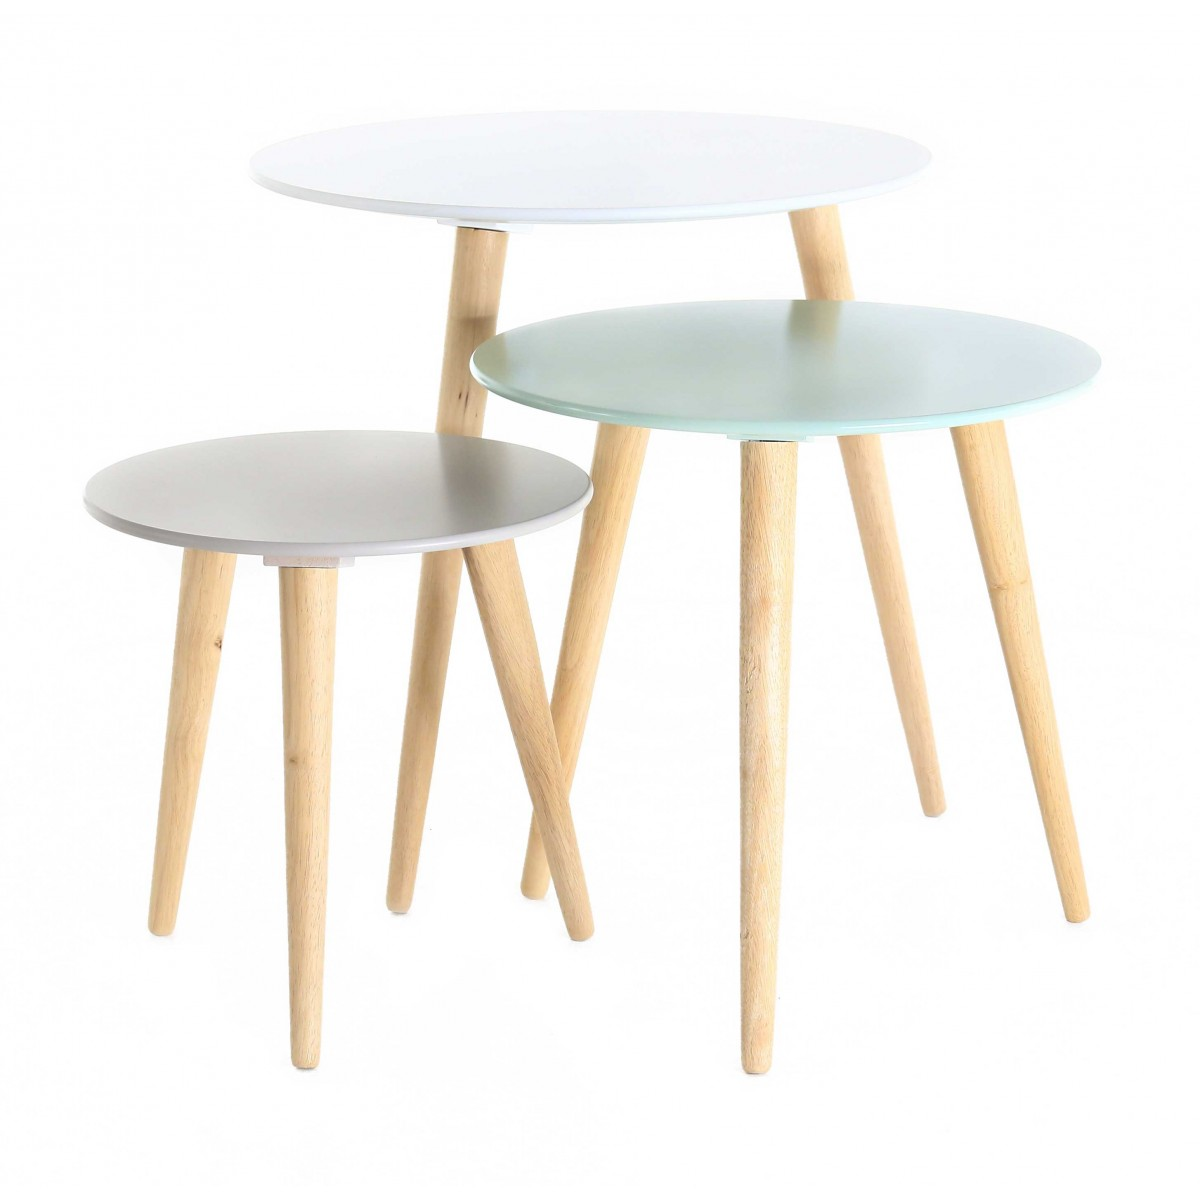 Set de 3 tables gigognes rondes scandinaves mooviin Table ronde scandinave blanche